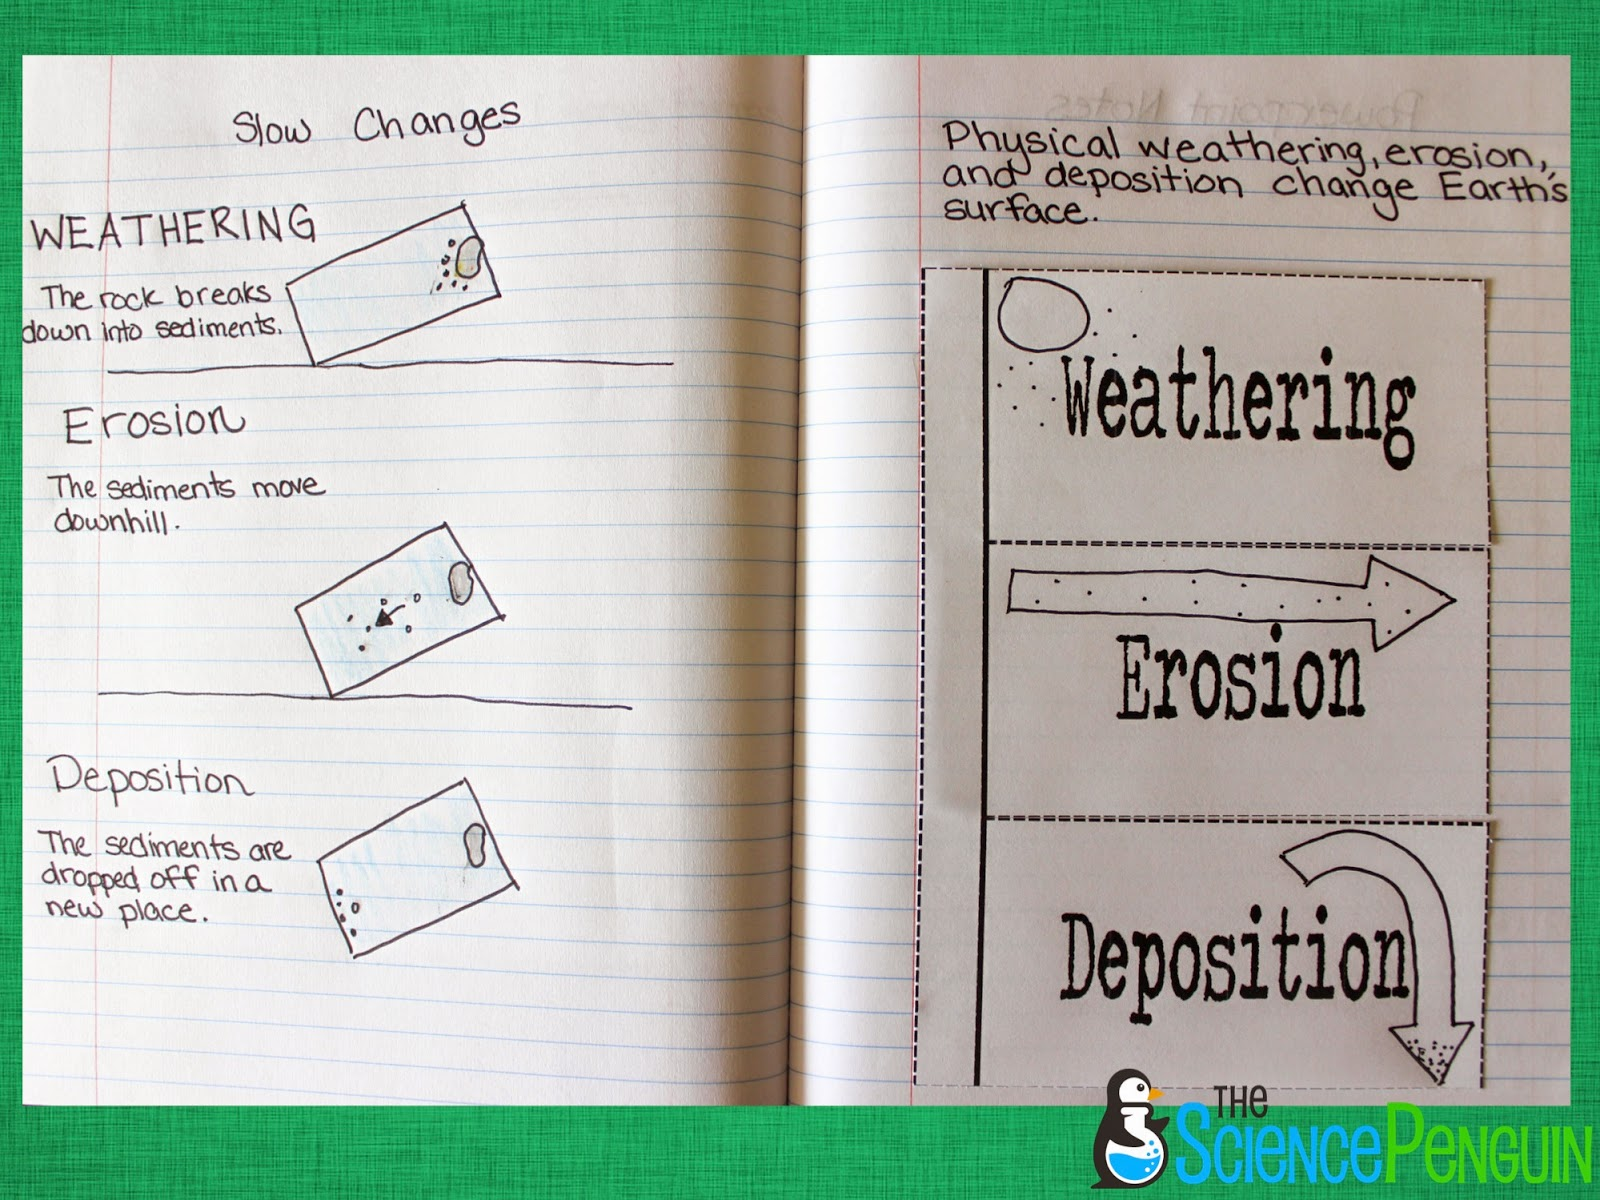 The Science Penguin Weathering Erosion And Deposition Notebook Photos